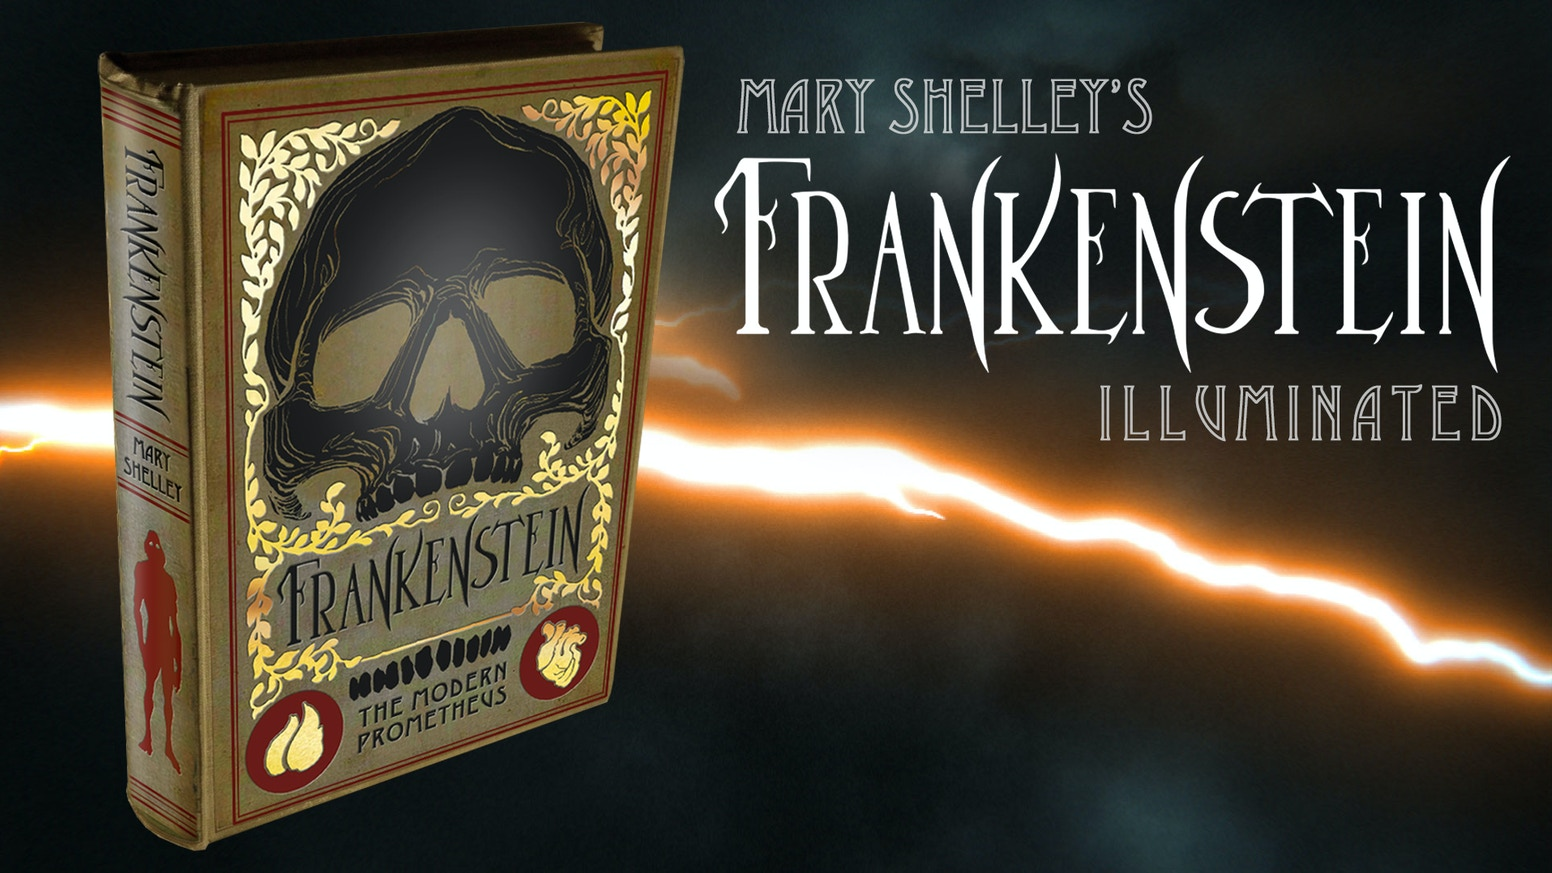 An illuminated edition of the original science fiction horror 1818 novel Frankenstein by Mary Shelley. Illustrated by Matt Hughes.